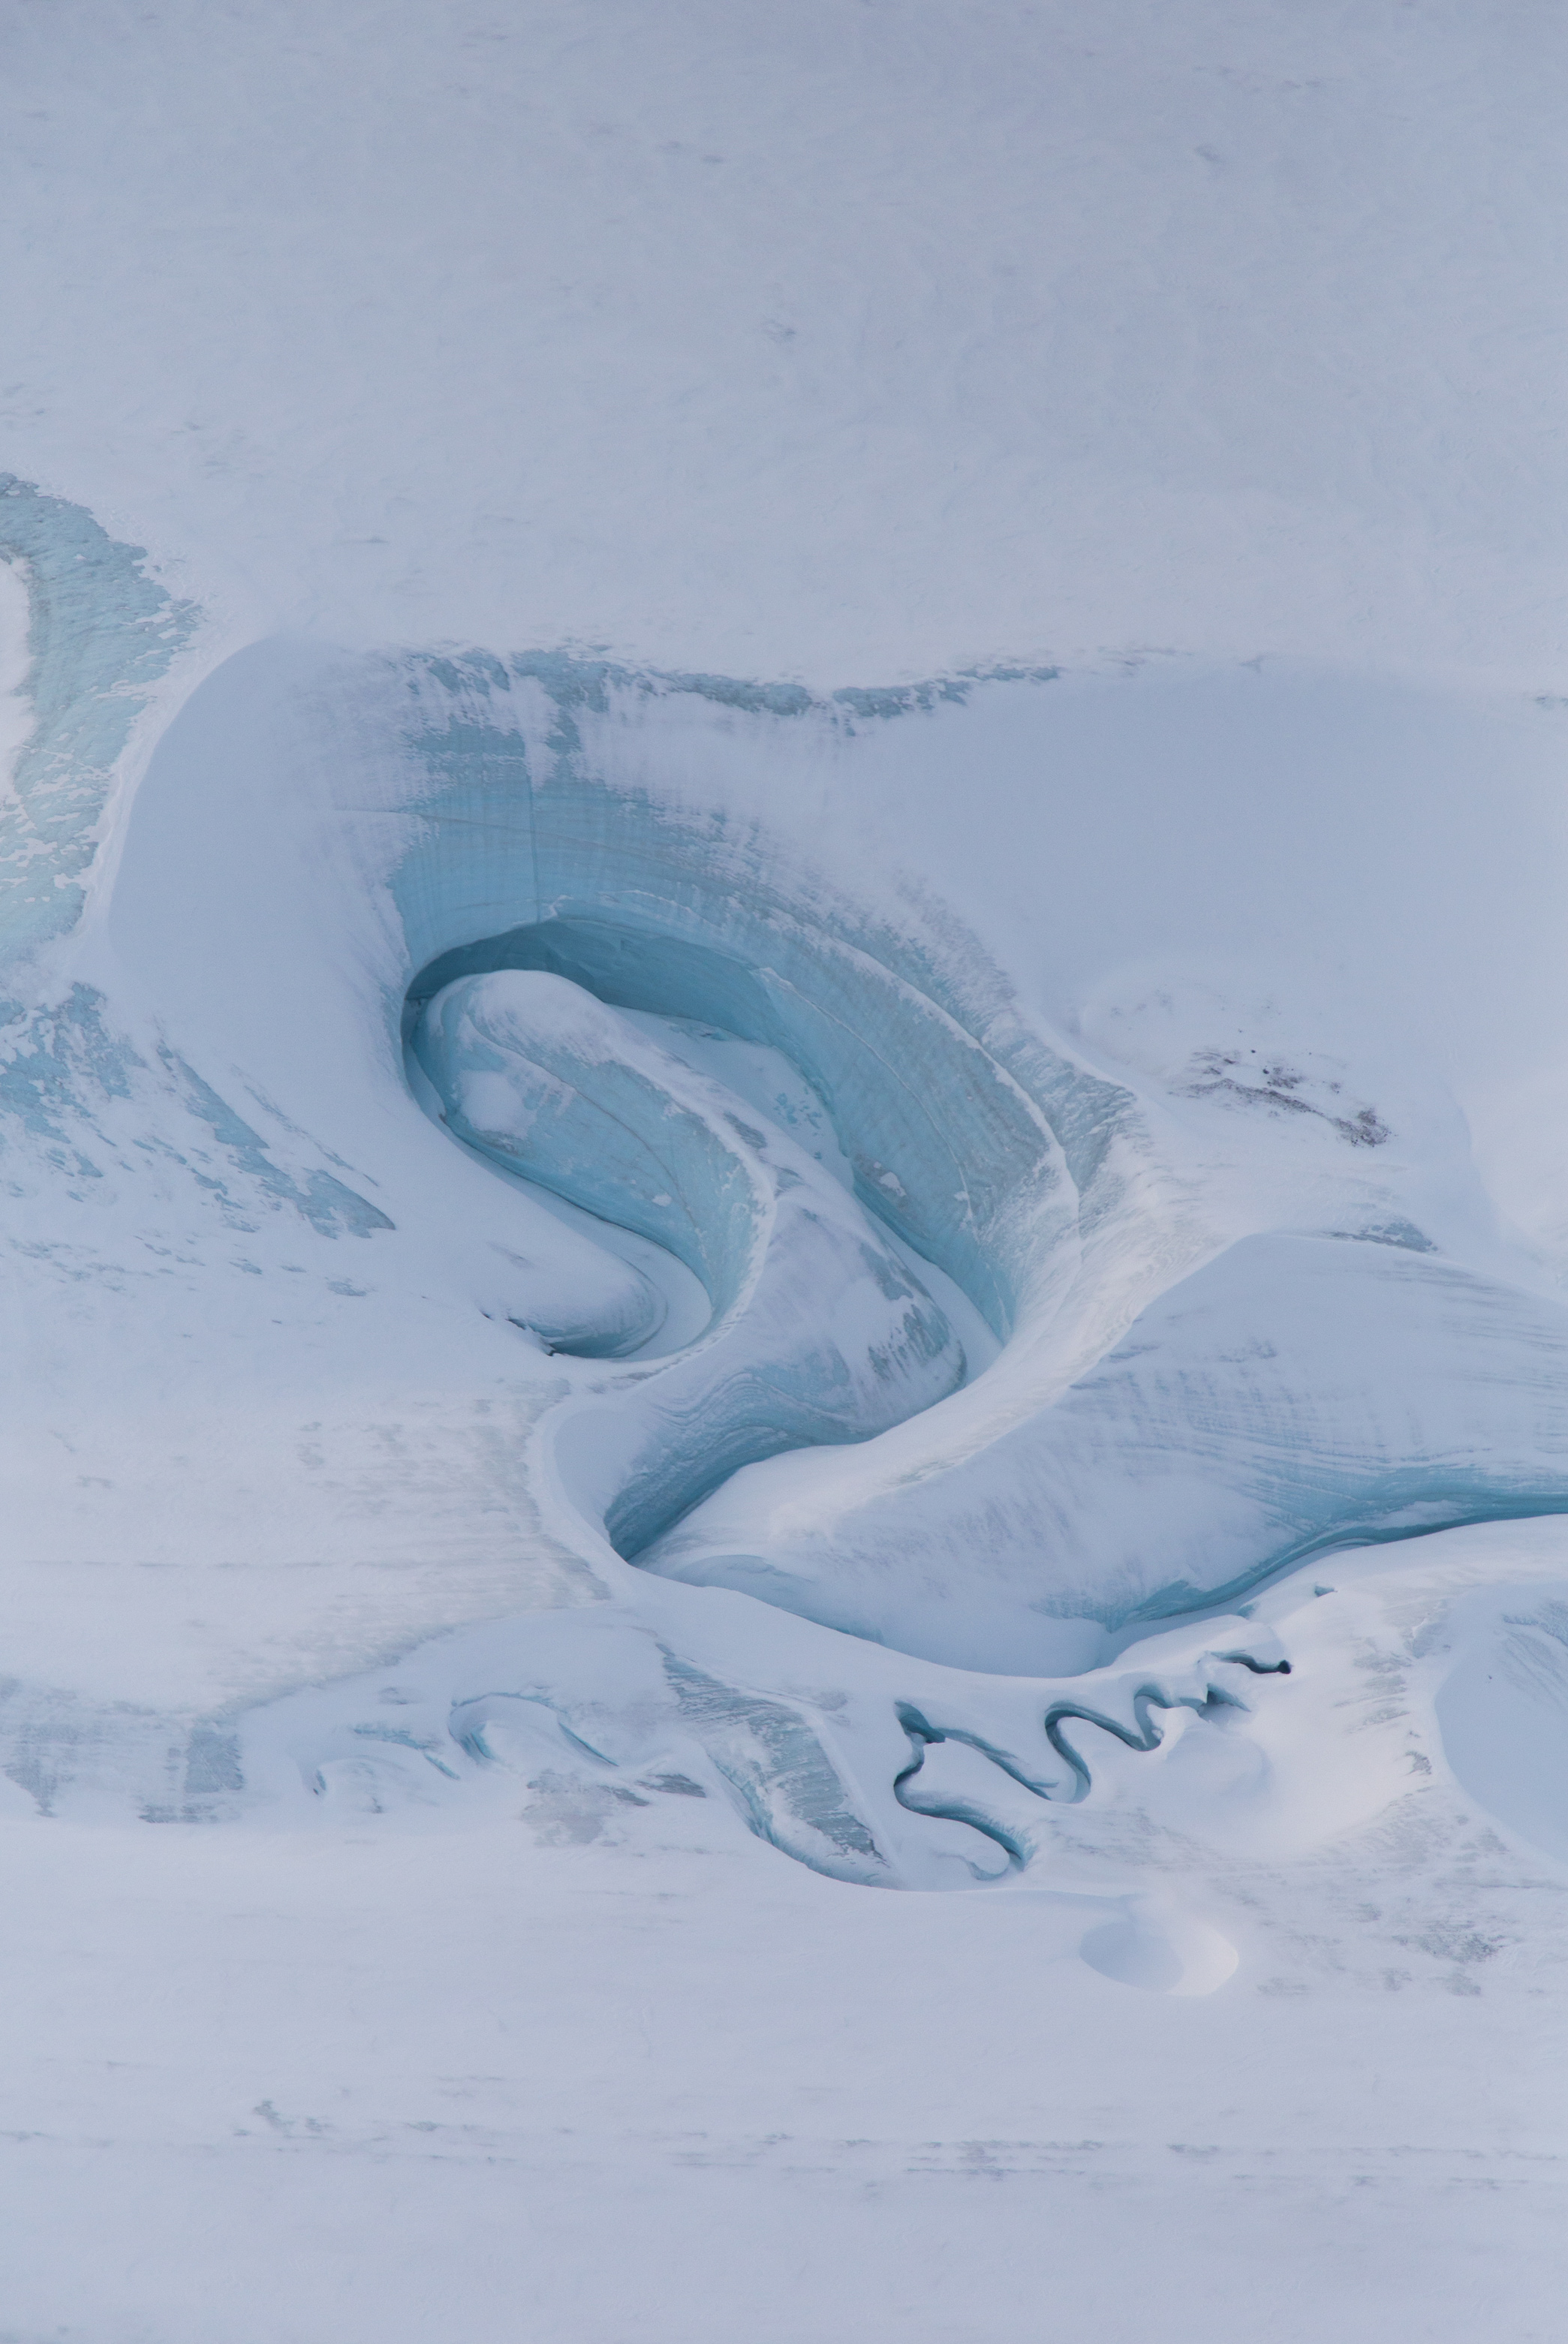 Today's Image of the Day comes from NASA and features a look at meltwater channels on Ellesmere Island in the Canadian Arctic Archipelago.